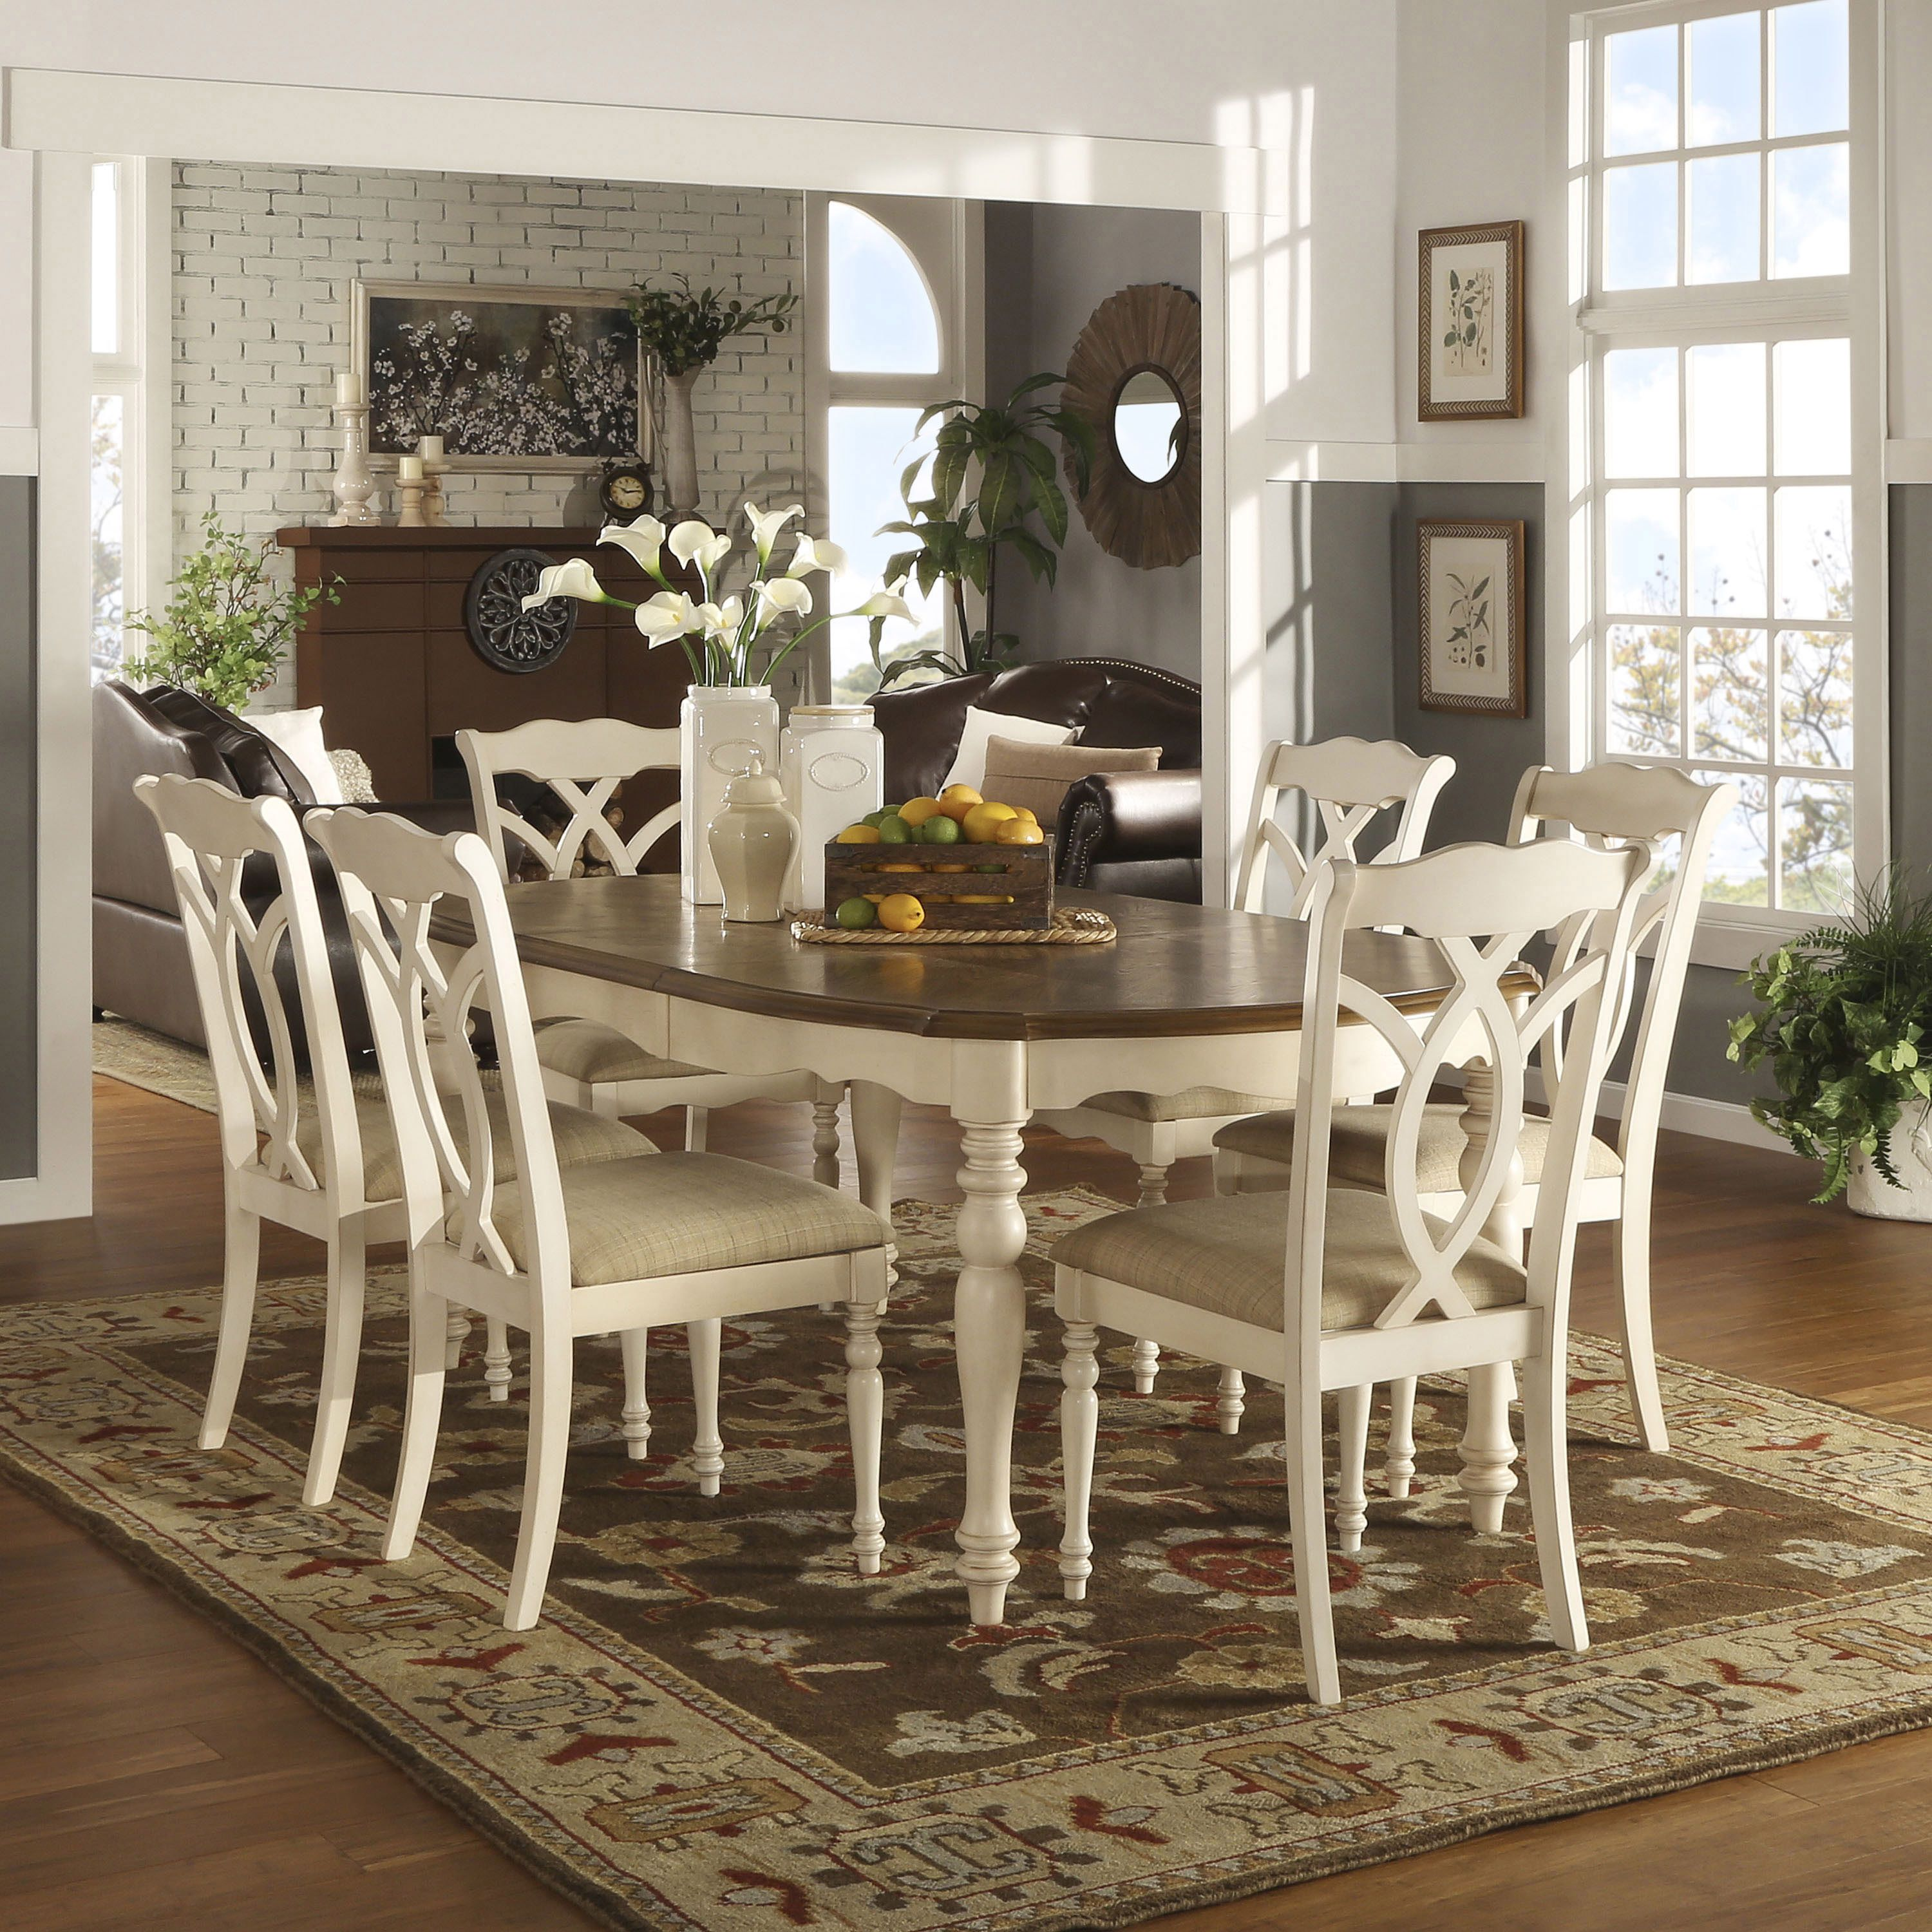 Country Kitchen Dining Set: Shayne Country Antique Two-tone White Extending Dining Set